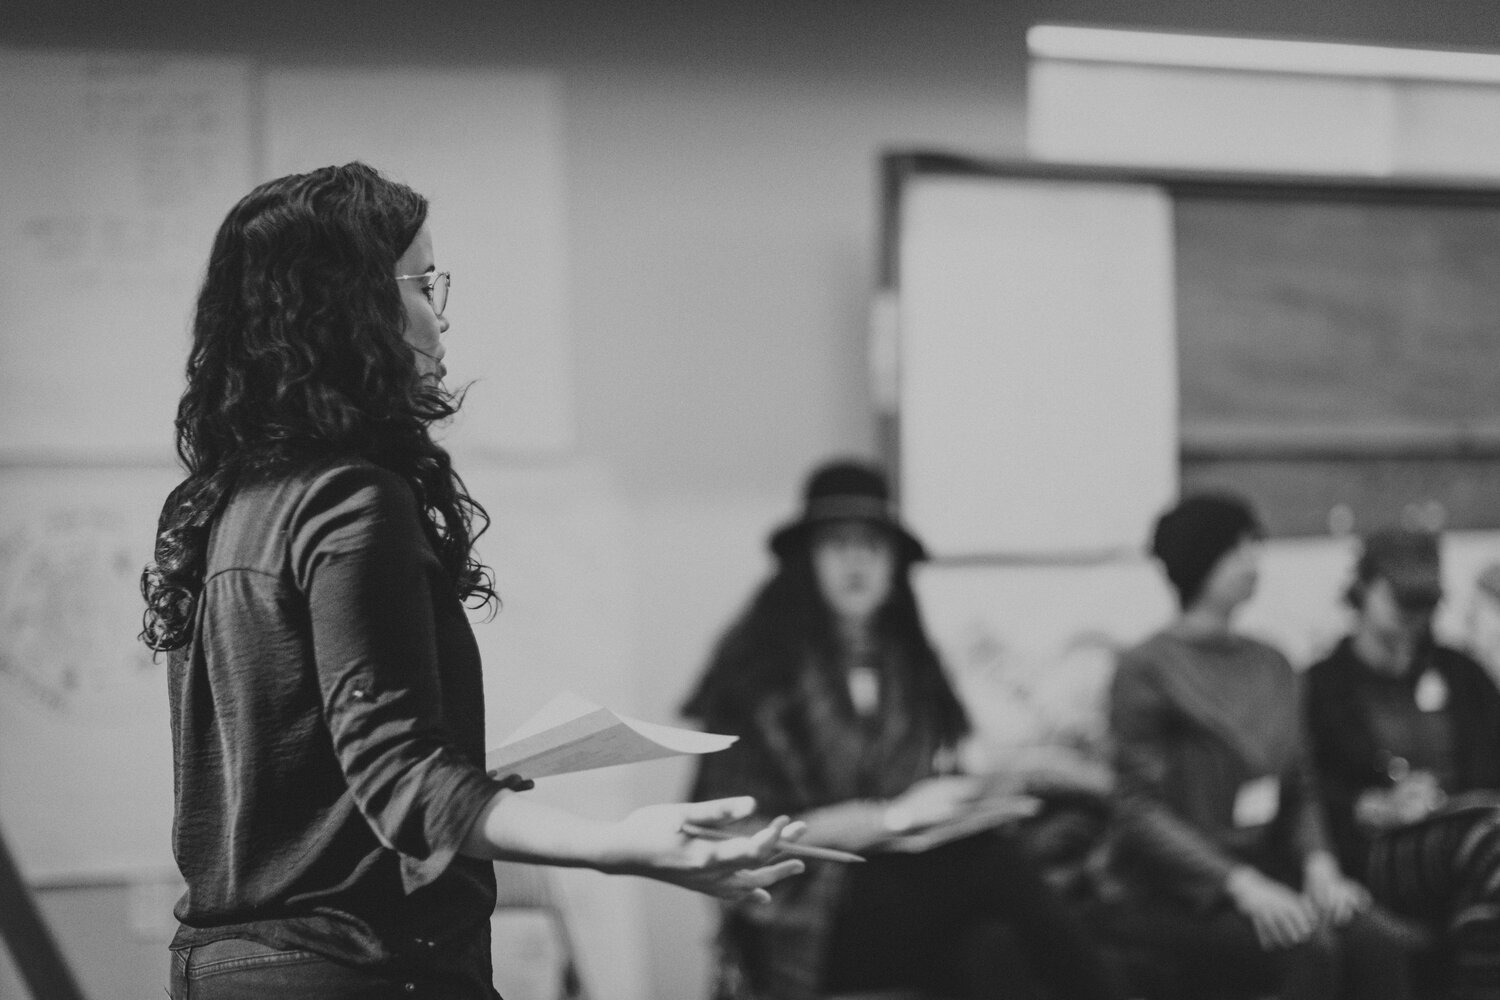 Shey Rivera Ríos at an Assets for Artists workshop in January 2020, photo by Erin Long Photography.